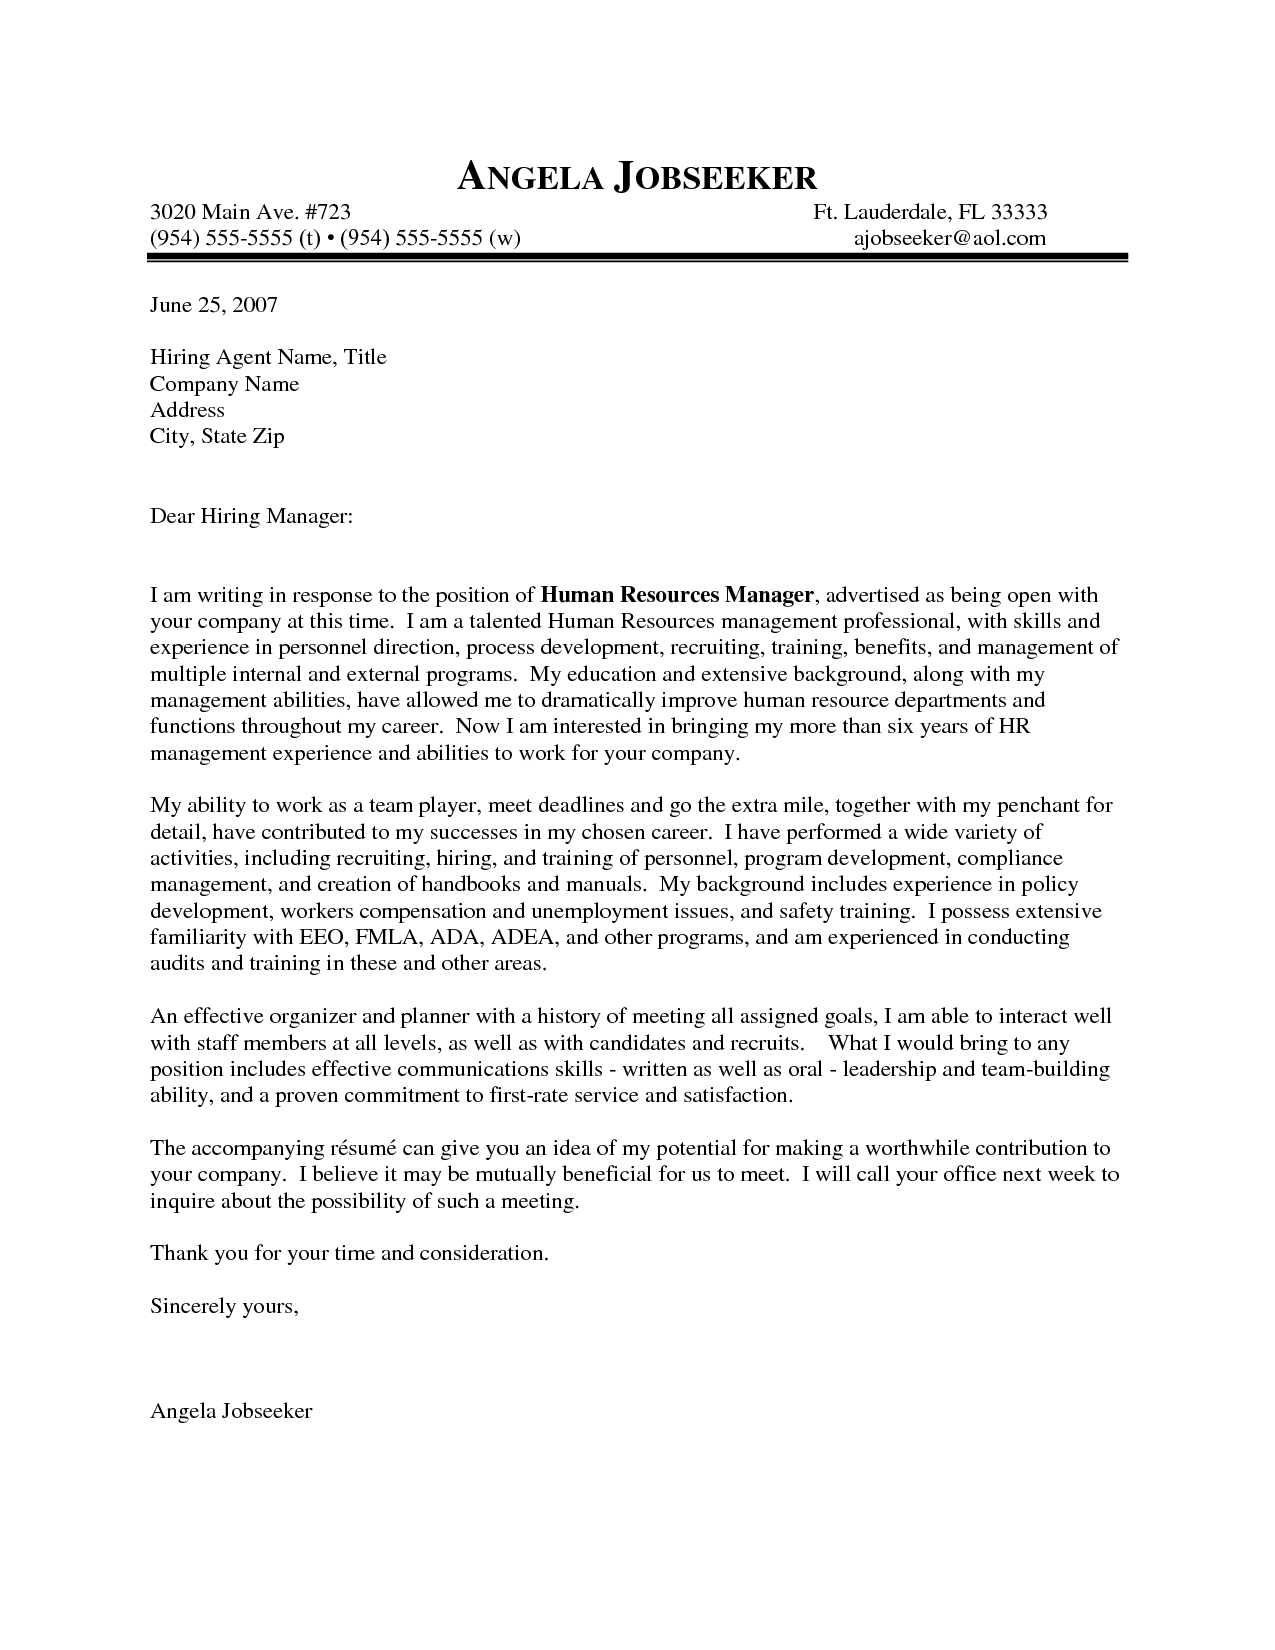 Outstanding Cover Letter Examples HR Manager Cover Letter - Sample Hr Cover Letters